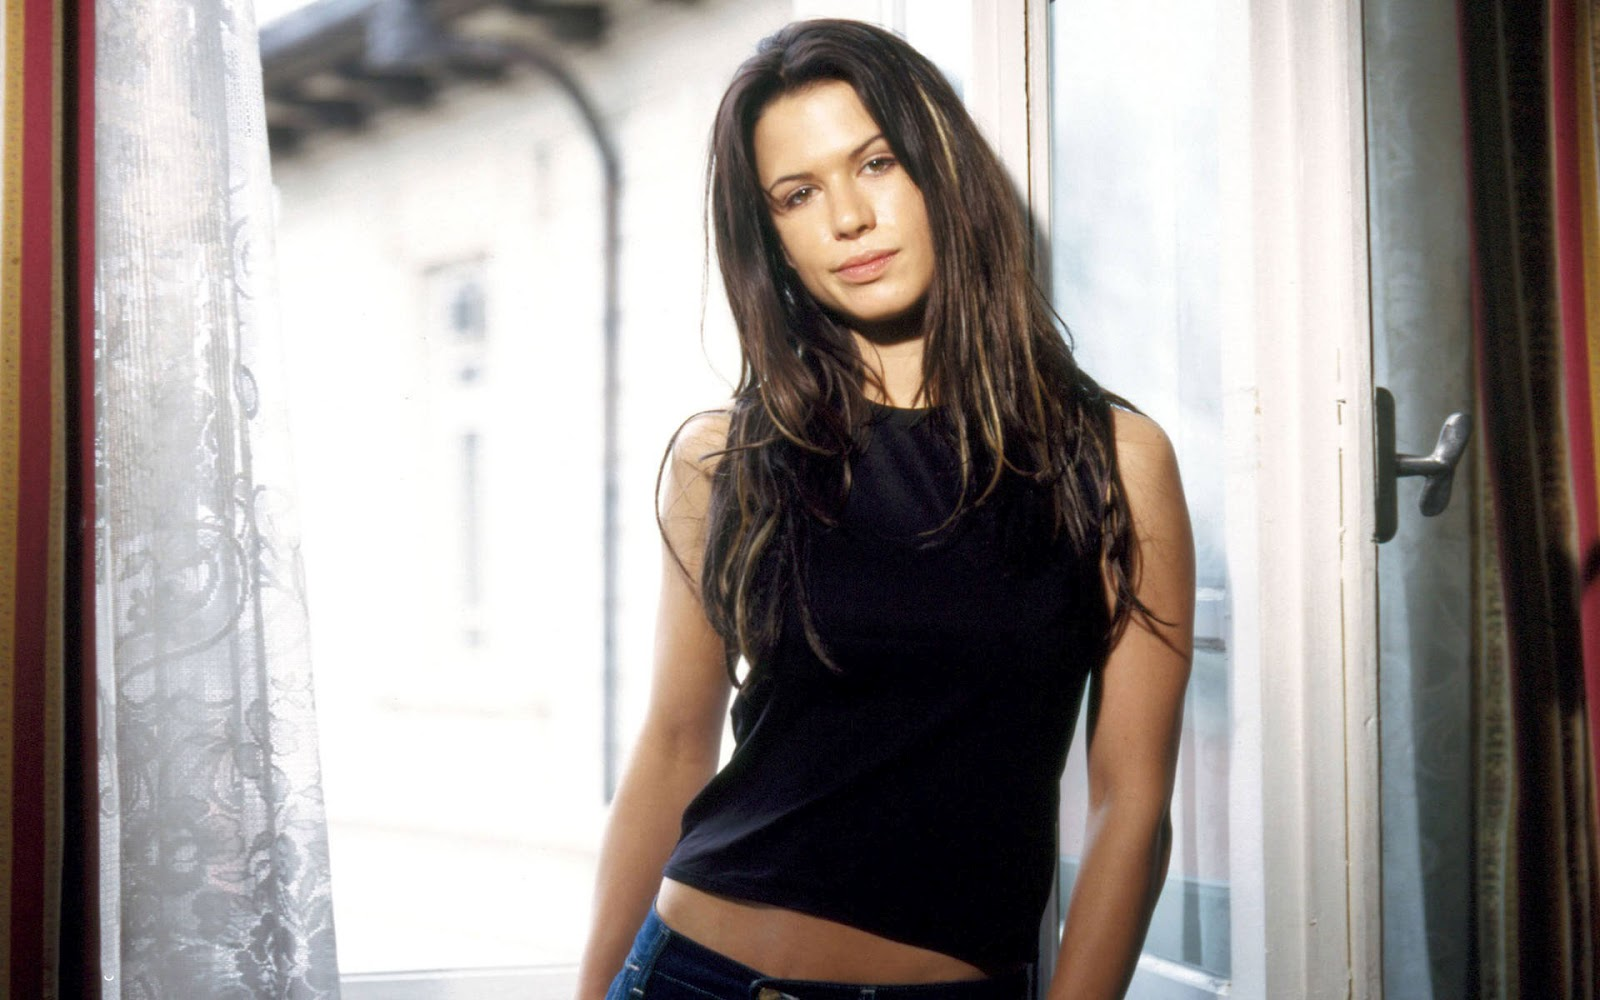 Young Rhona Mitra nudes (86 photo), Ass, Fappening, Instagram, cleavage 2006